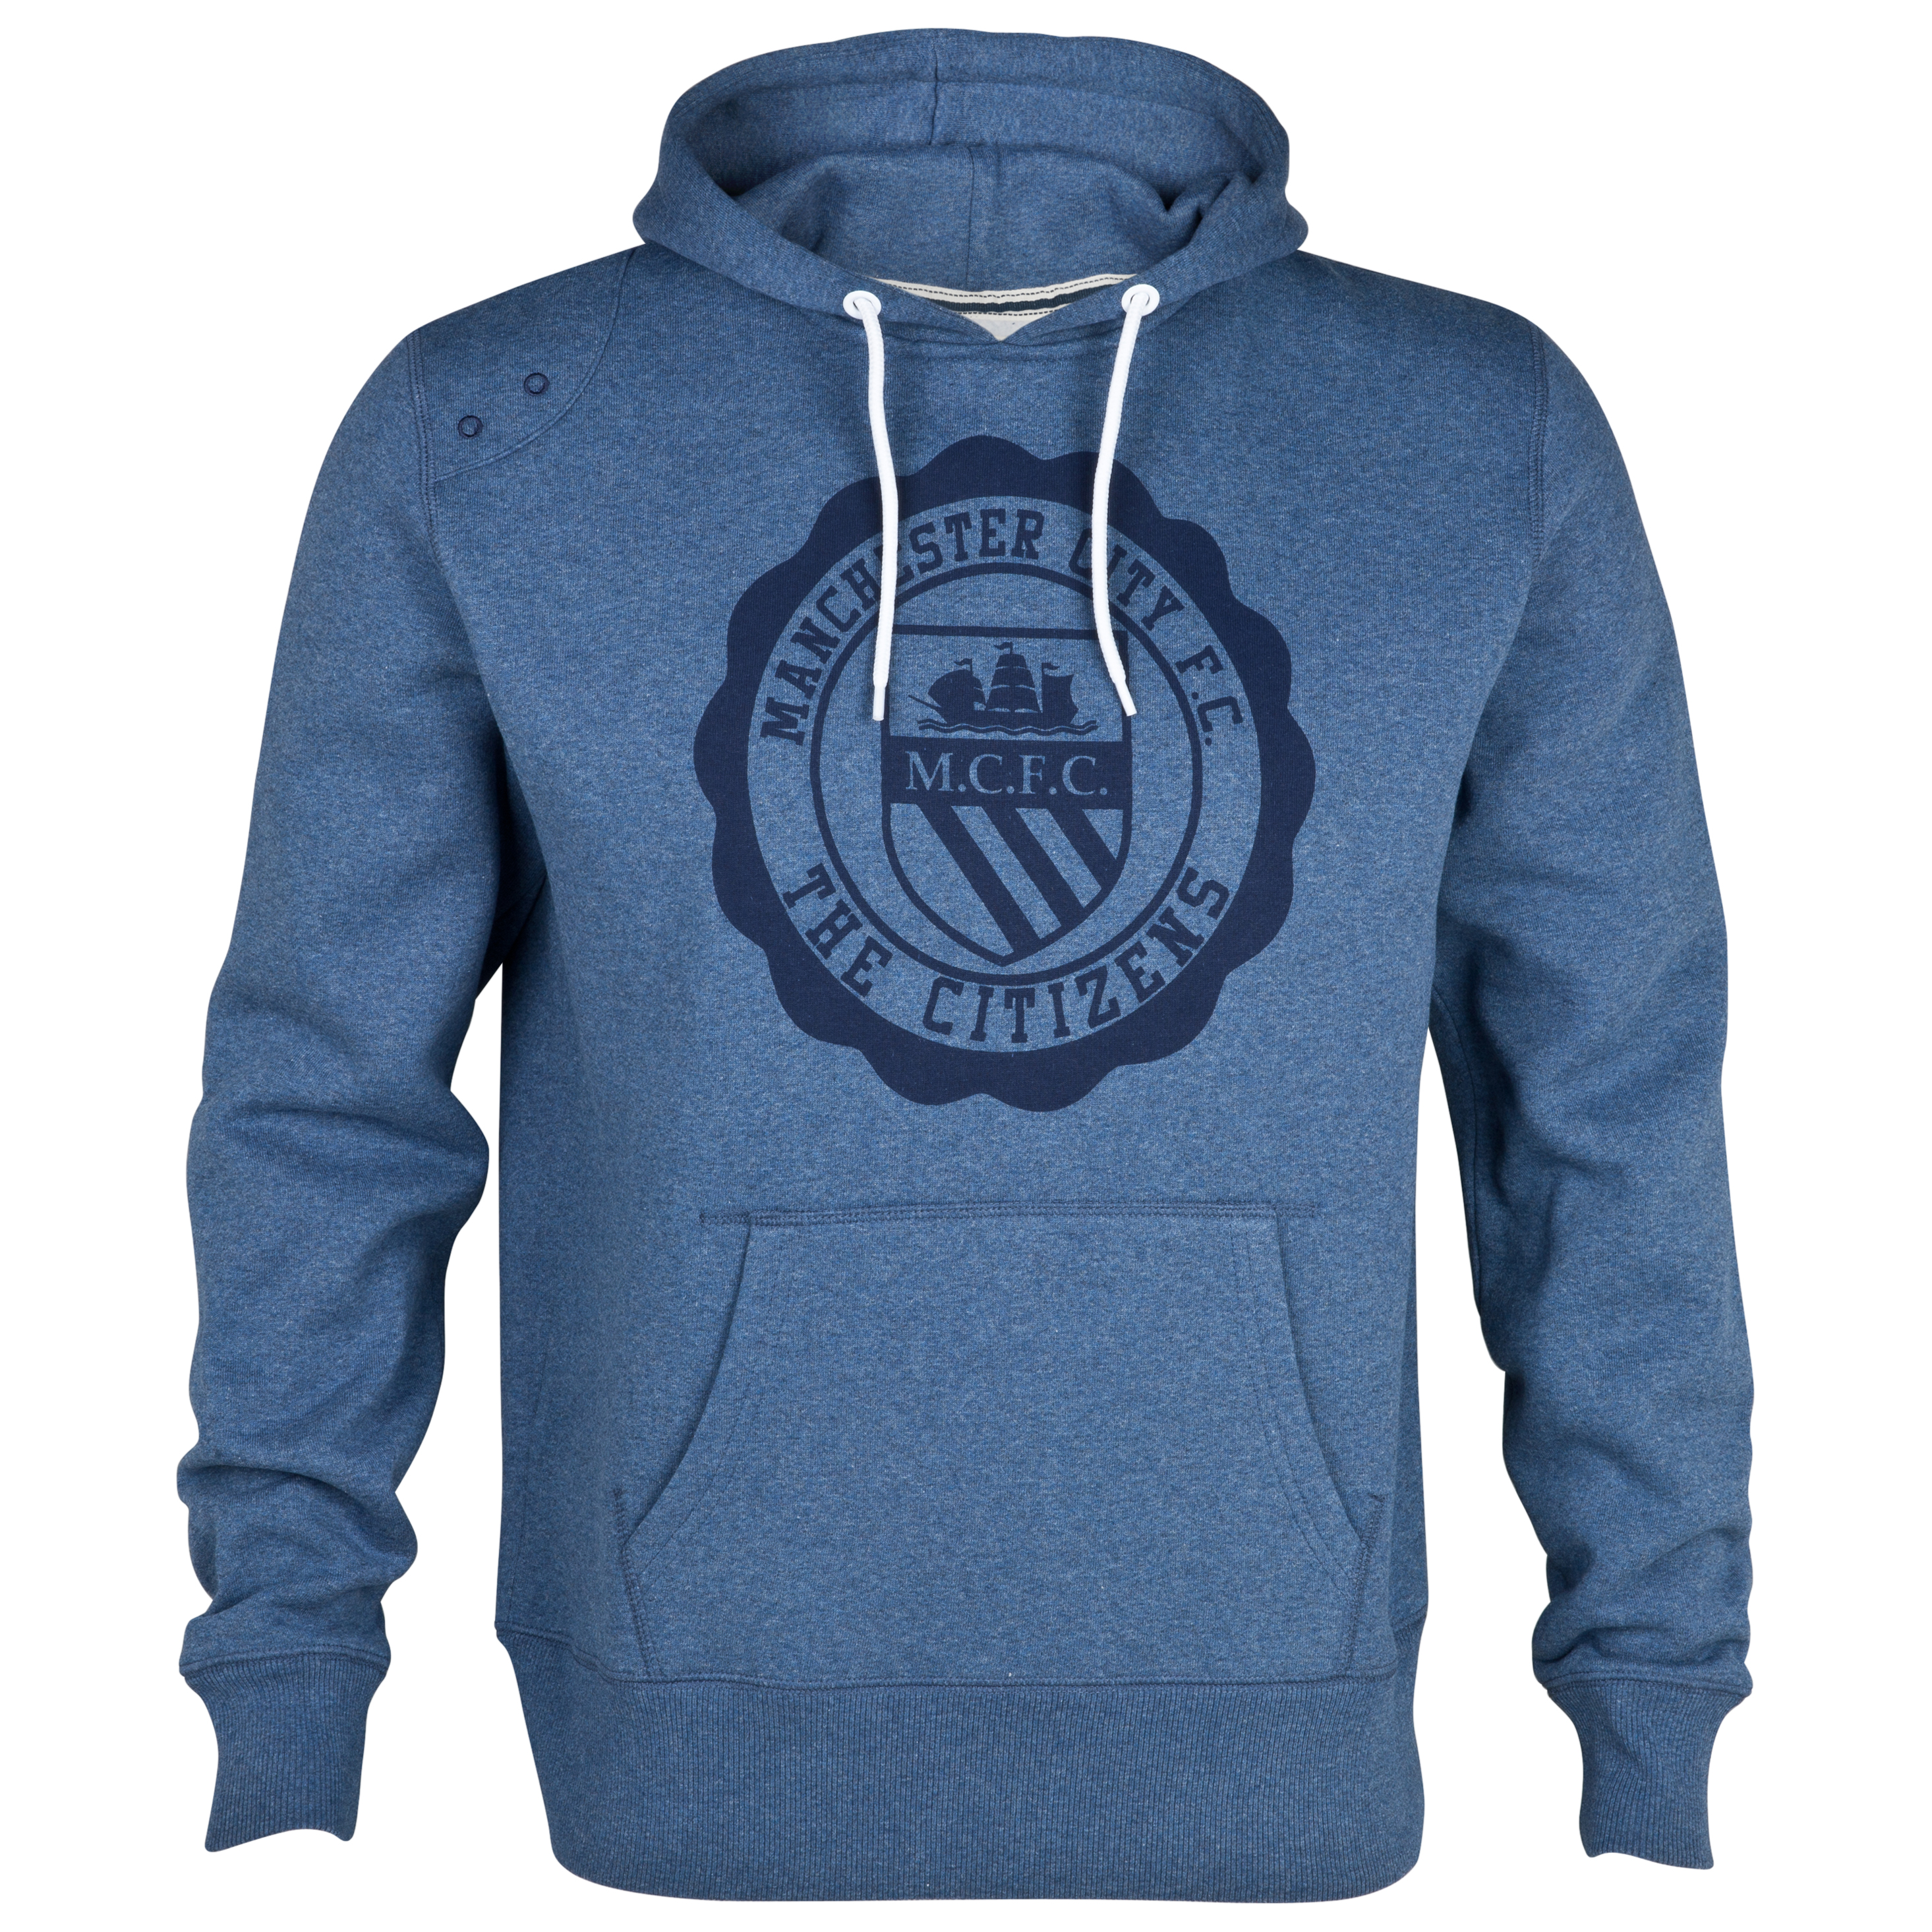 Manchester City Blaze Hoodie - Denim Marl